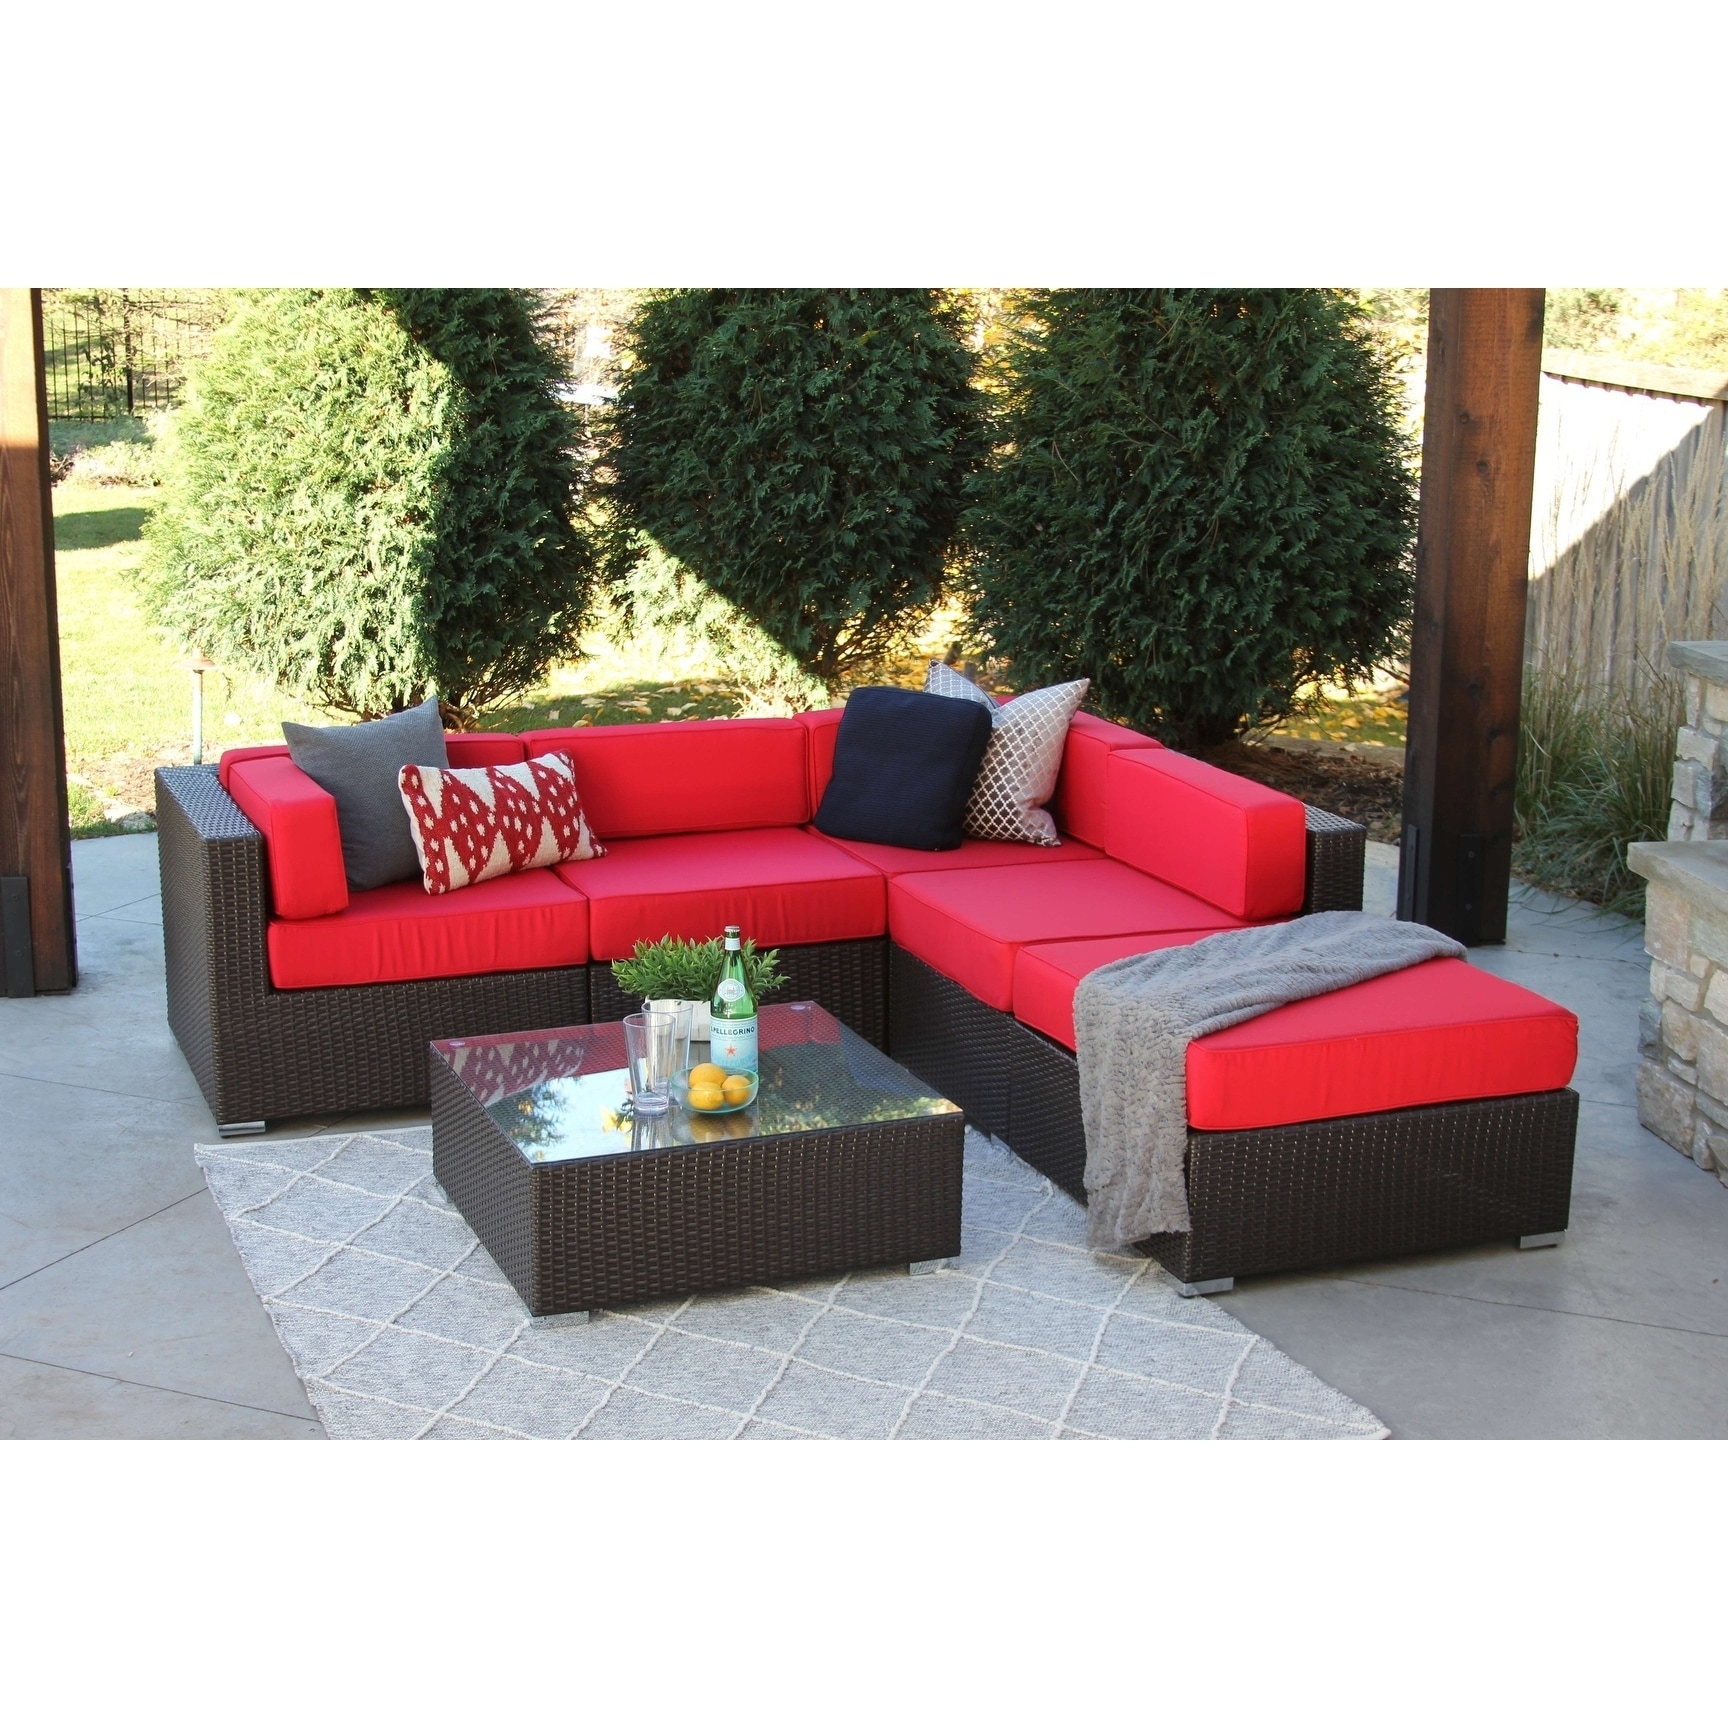 Nicolett 6 Pc Modern Outdoor Rattan Patio Furniture